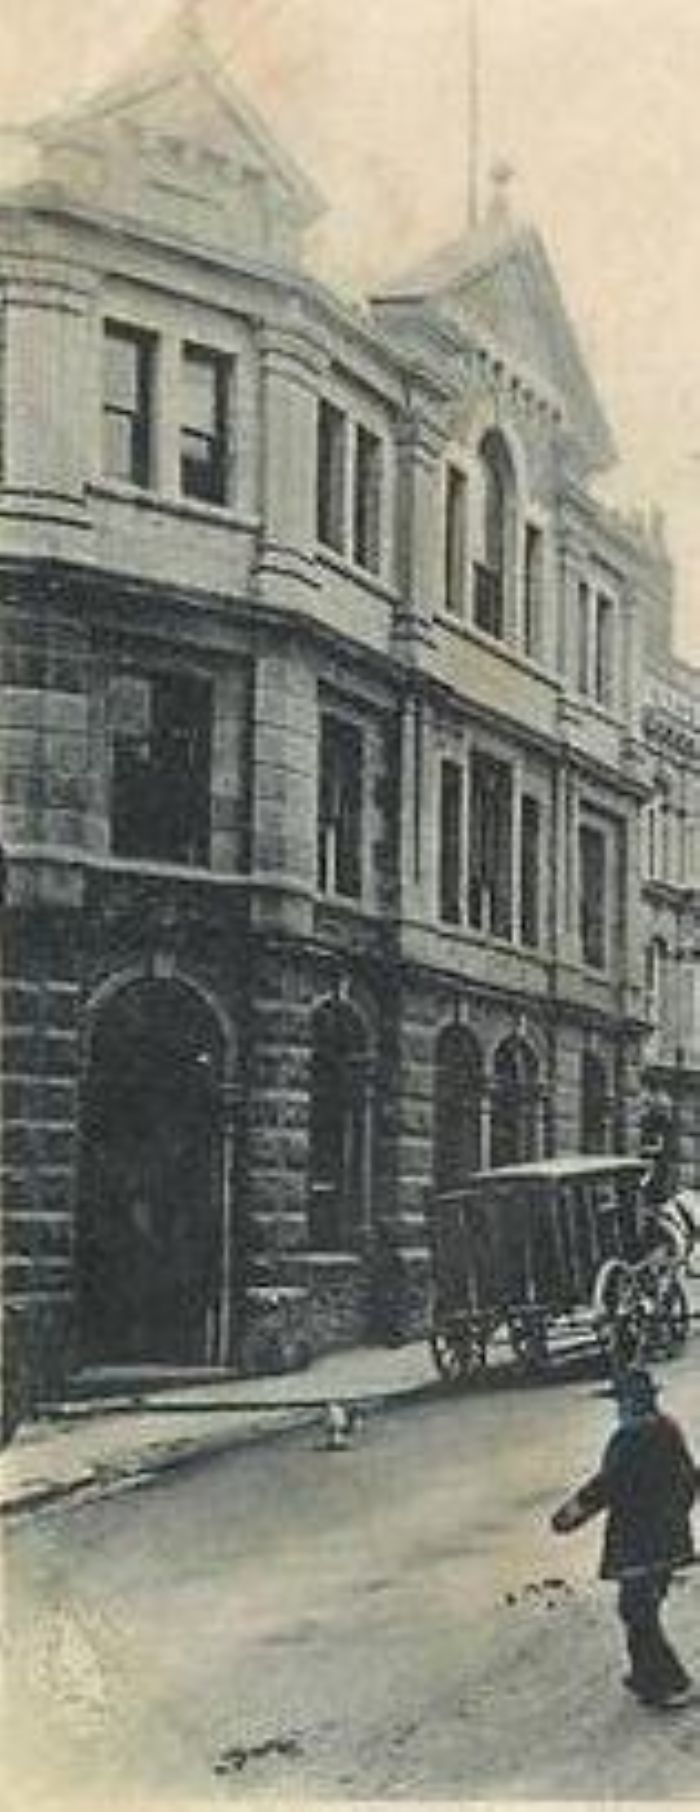 Penzance Post Office in the early 20th century - note the extra storey (courtesy of the Cornish Nostalgic Memory FaceBook site)